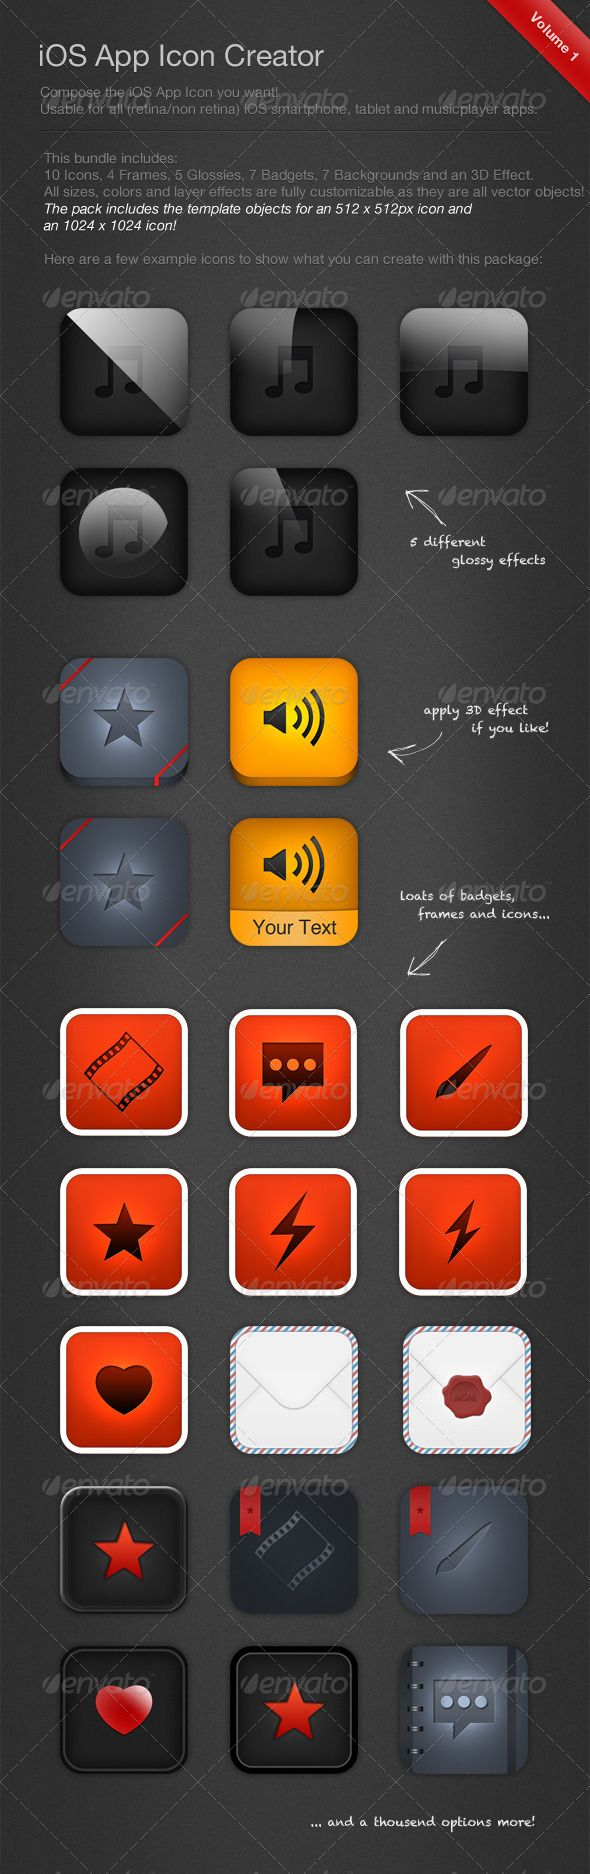 iOS Icon Creator This pack provides you a nice bunch of predefined icons, frames, glossy effects, badgeds, ... Just activate the layer and edit its color, size if you like! All sizes, colors and layer effects are fully customizable as they are all vector objects! The template objects are created for an 1024×1024px icon.